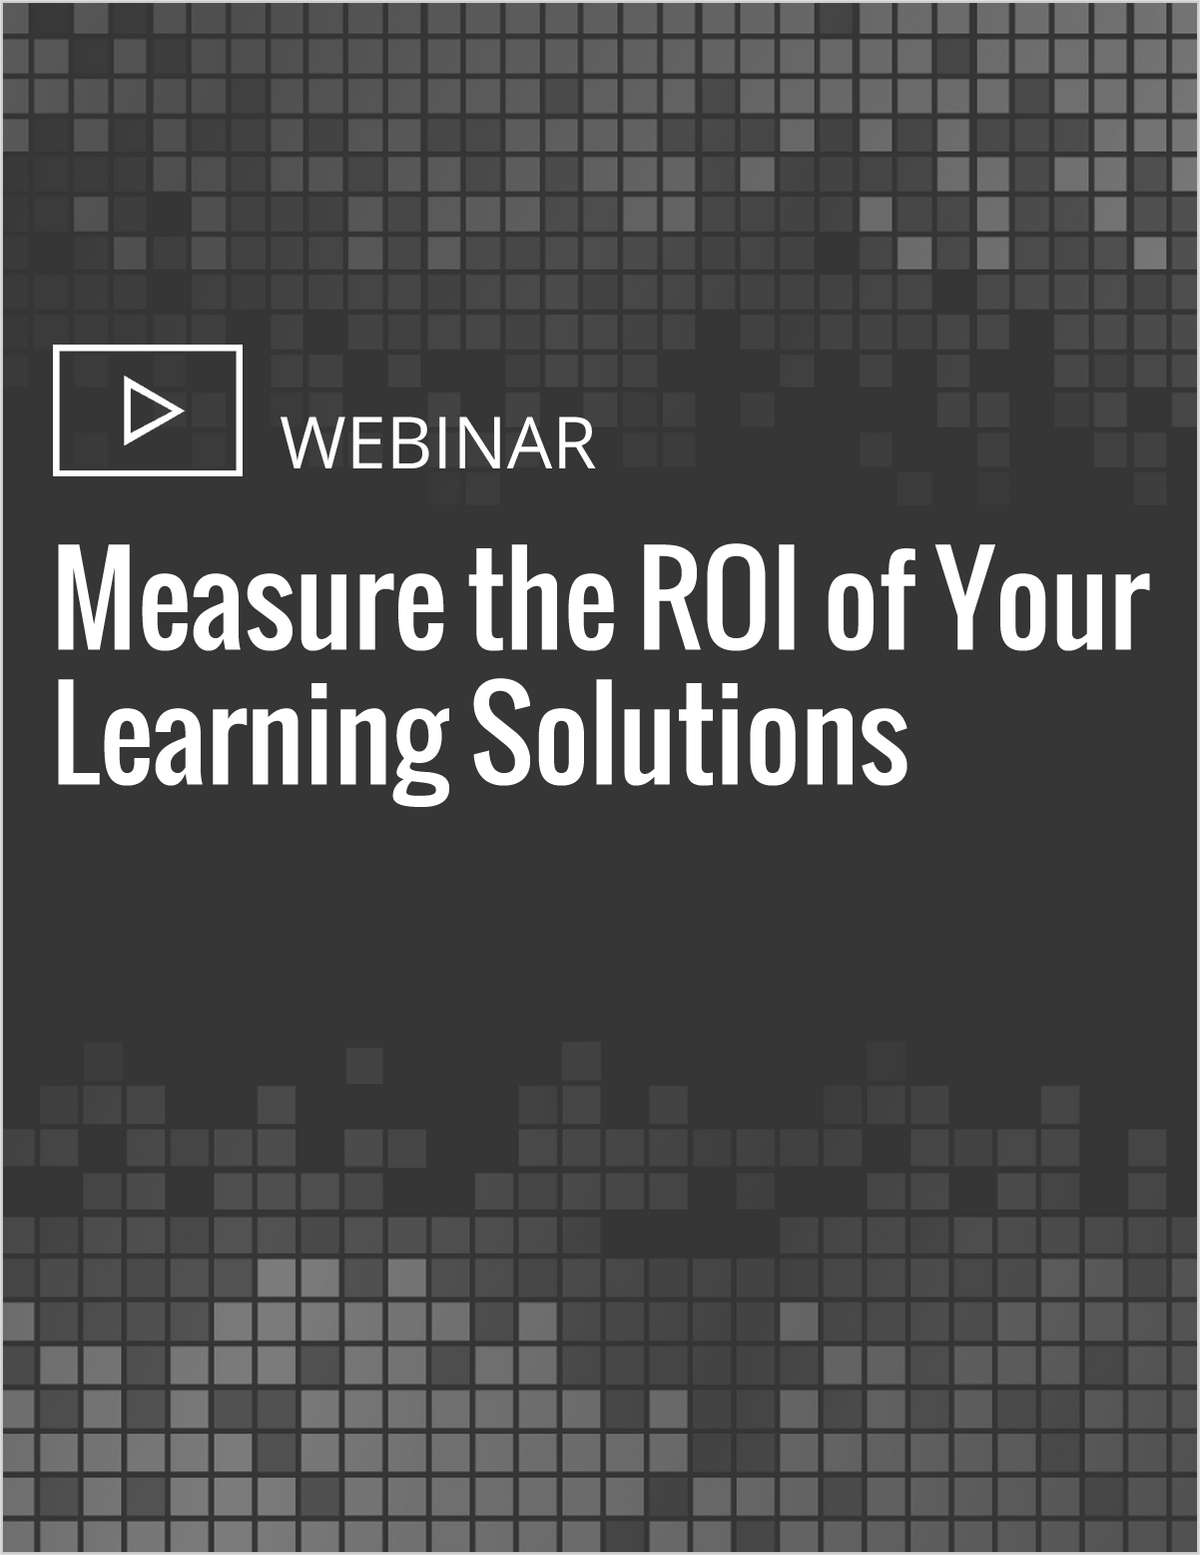 Measure the ROI of Your Learning Solutions